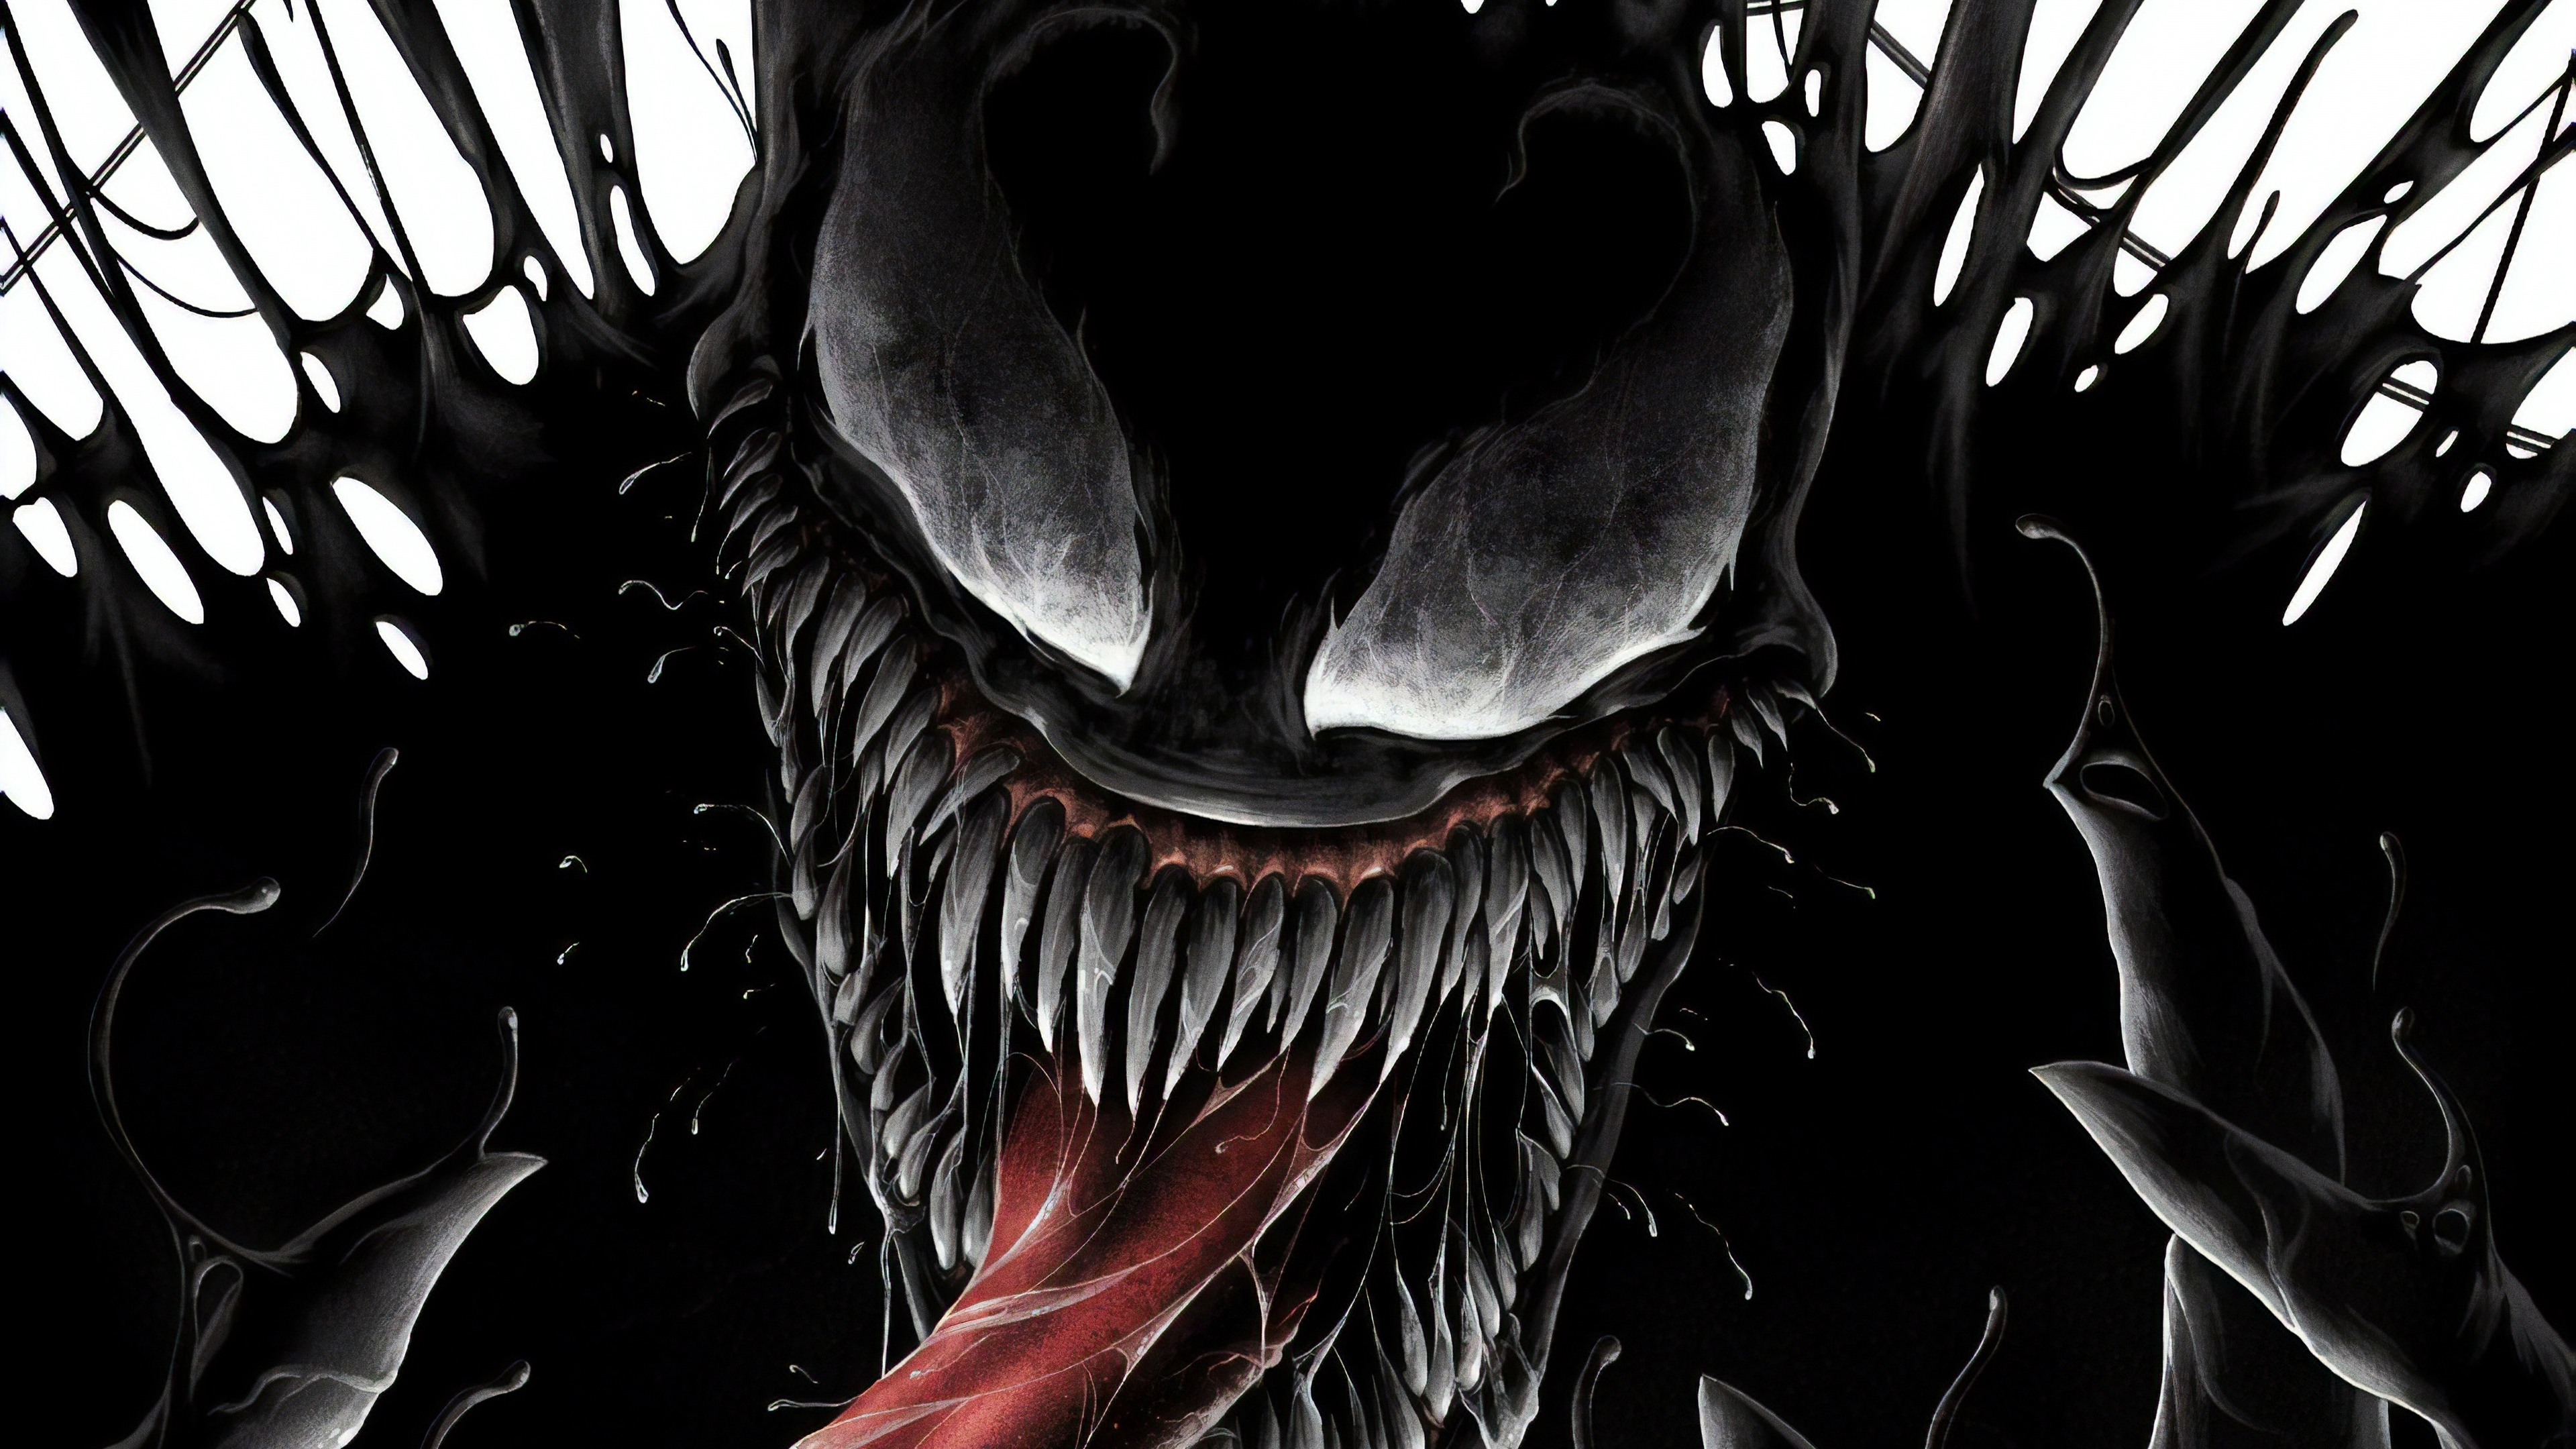 Wallpaper 4k Venom 4k New Poster 2018 Movies Wallpapers 4k